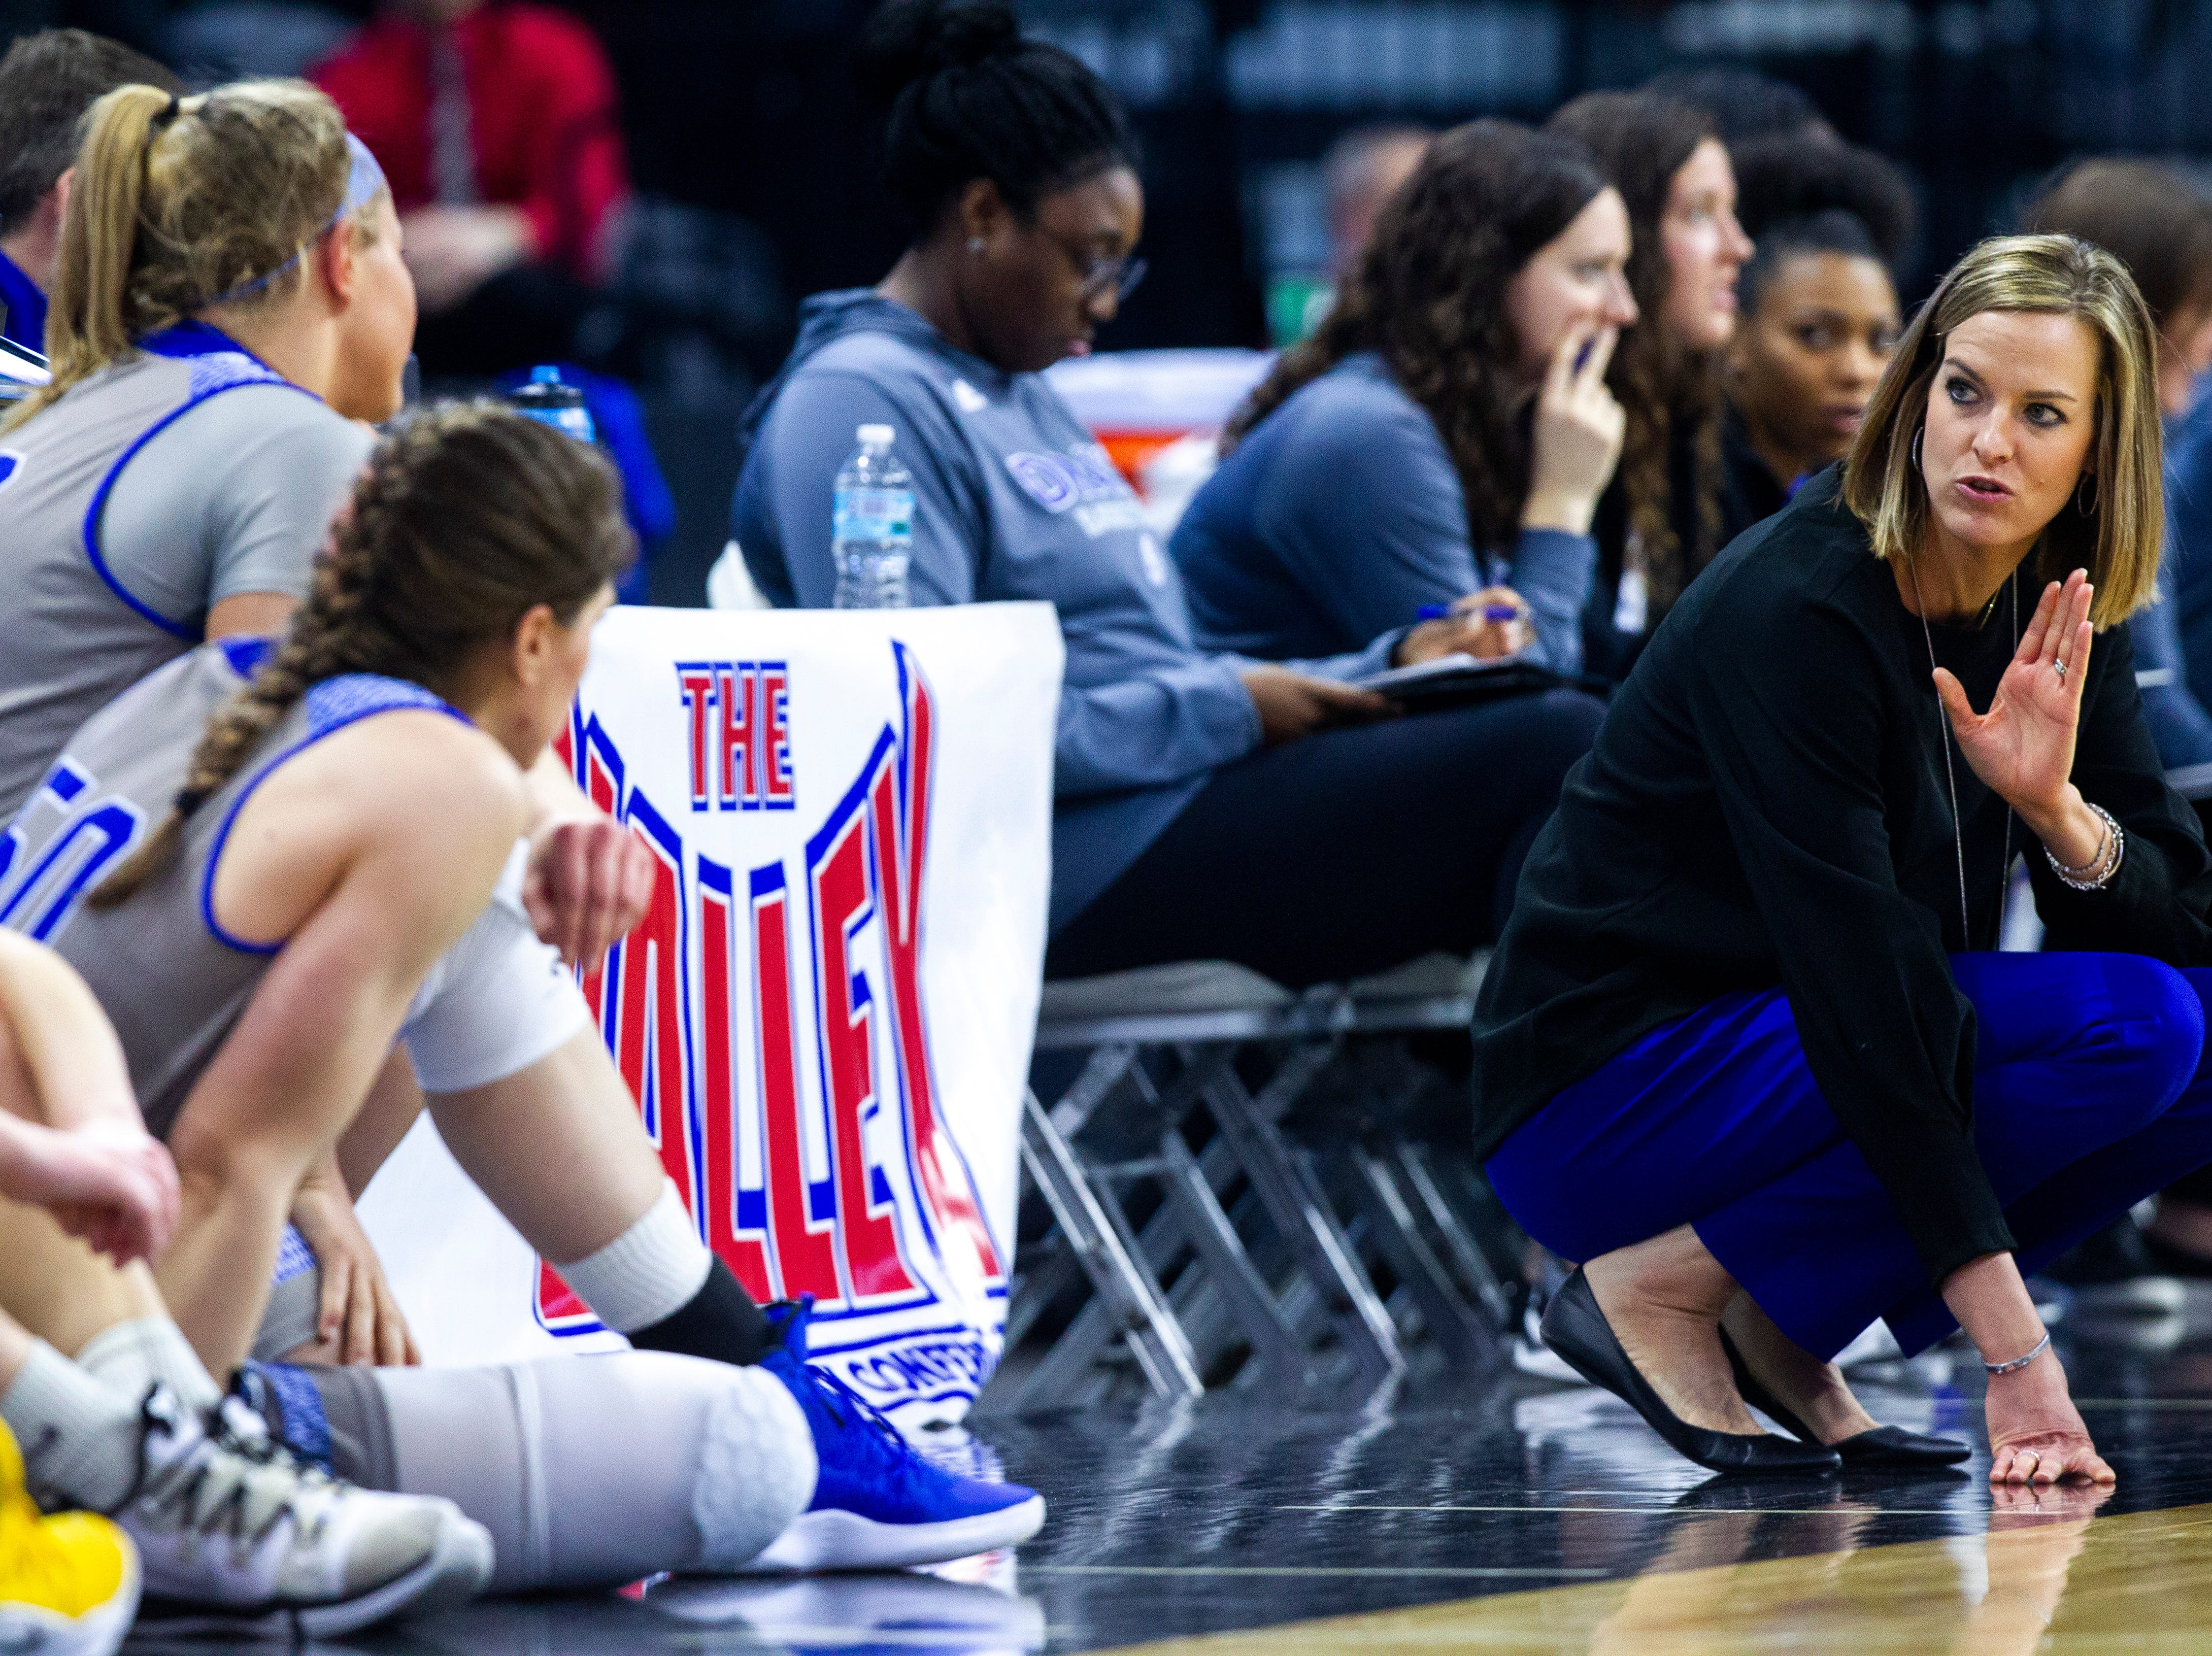 Drake head coach Jennie Baranczyk, right, talks with players waiting to check into the game during a NCAA Missouri Valley Conference women's basketball quarterfinal tournament game, Friday, March 15, 2019, at the TaxSlayer Center in Moline, Illinois.